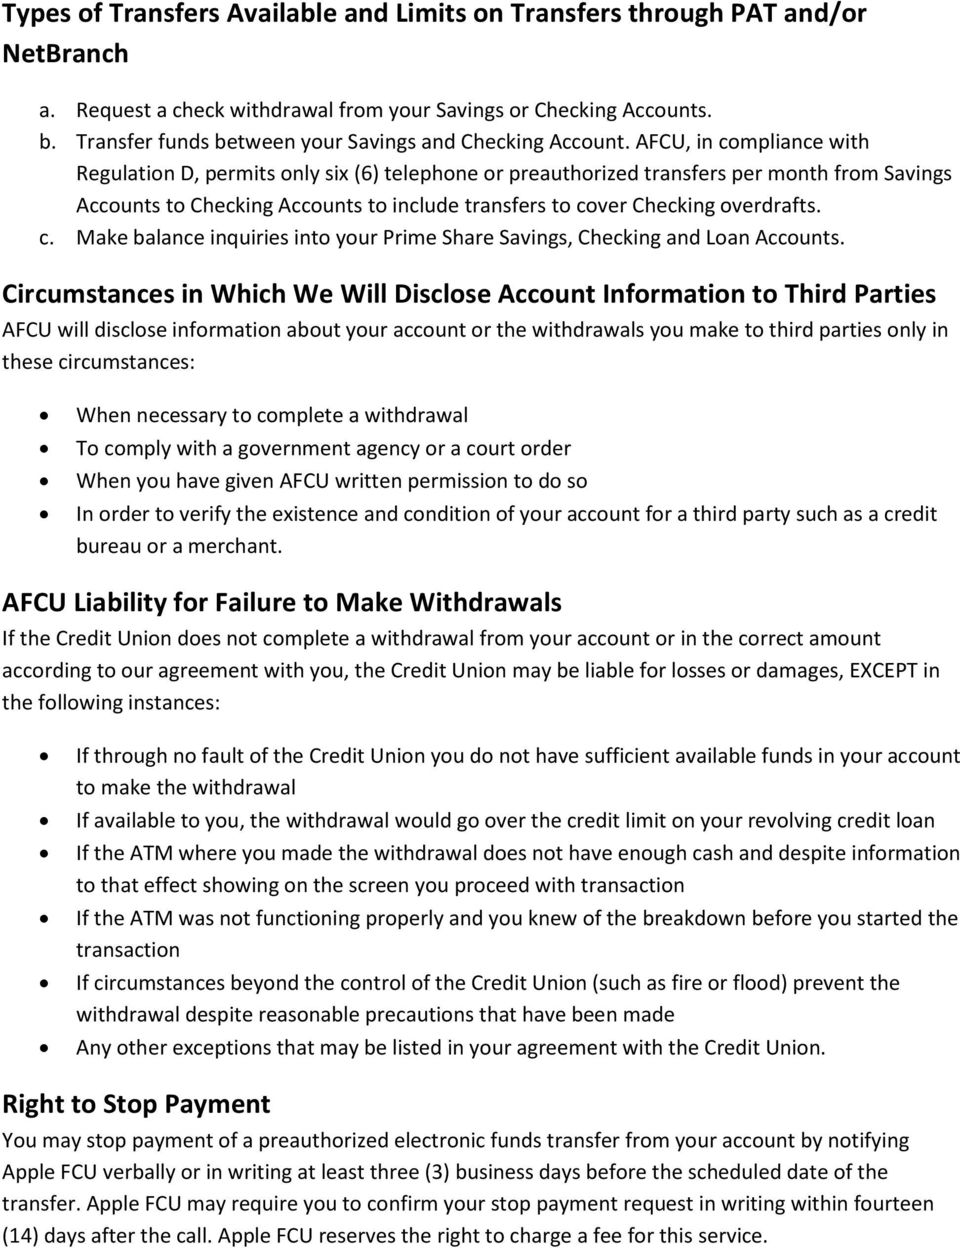 AFCU, in compliance with Regulation D, permits only six (6) telephone or preauthorized transfers per month from Savings Accounts to Checking Accounts to include transfers to cover Checking overdrafts.